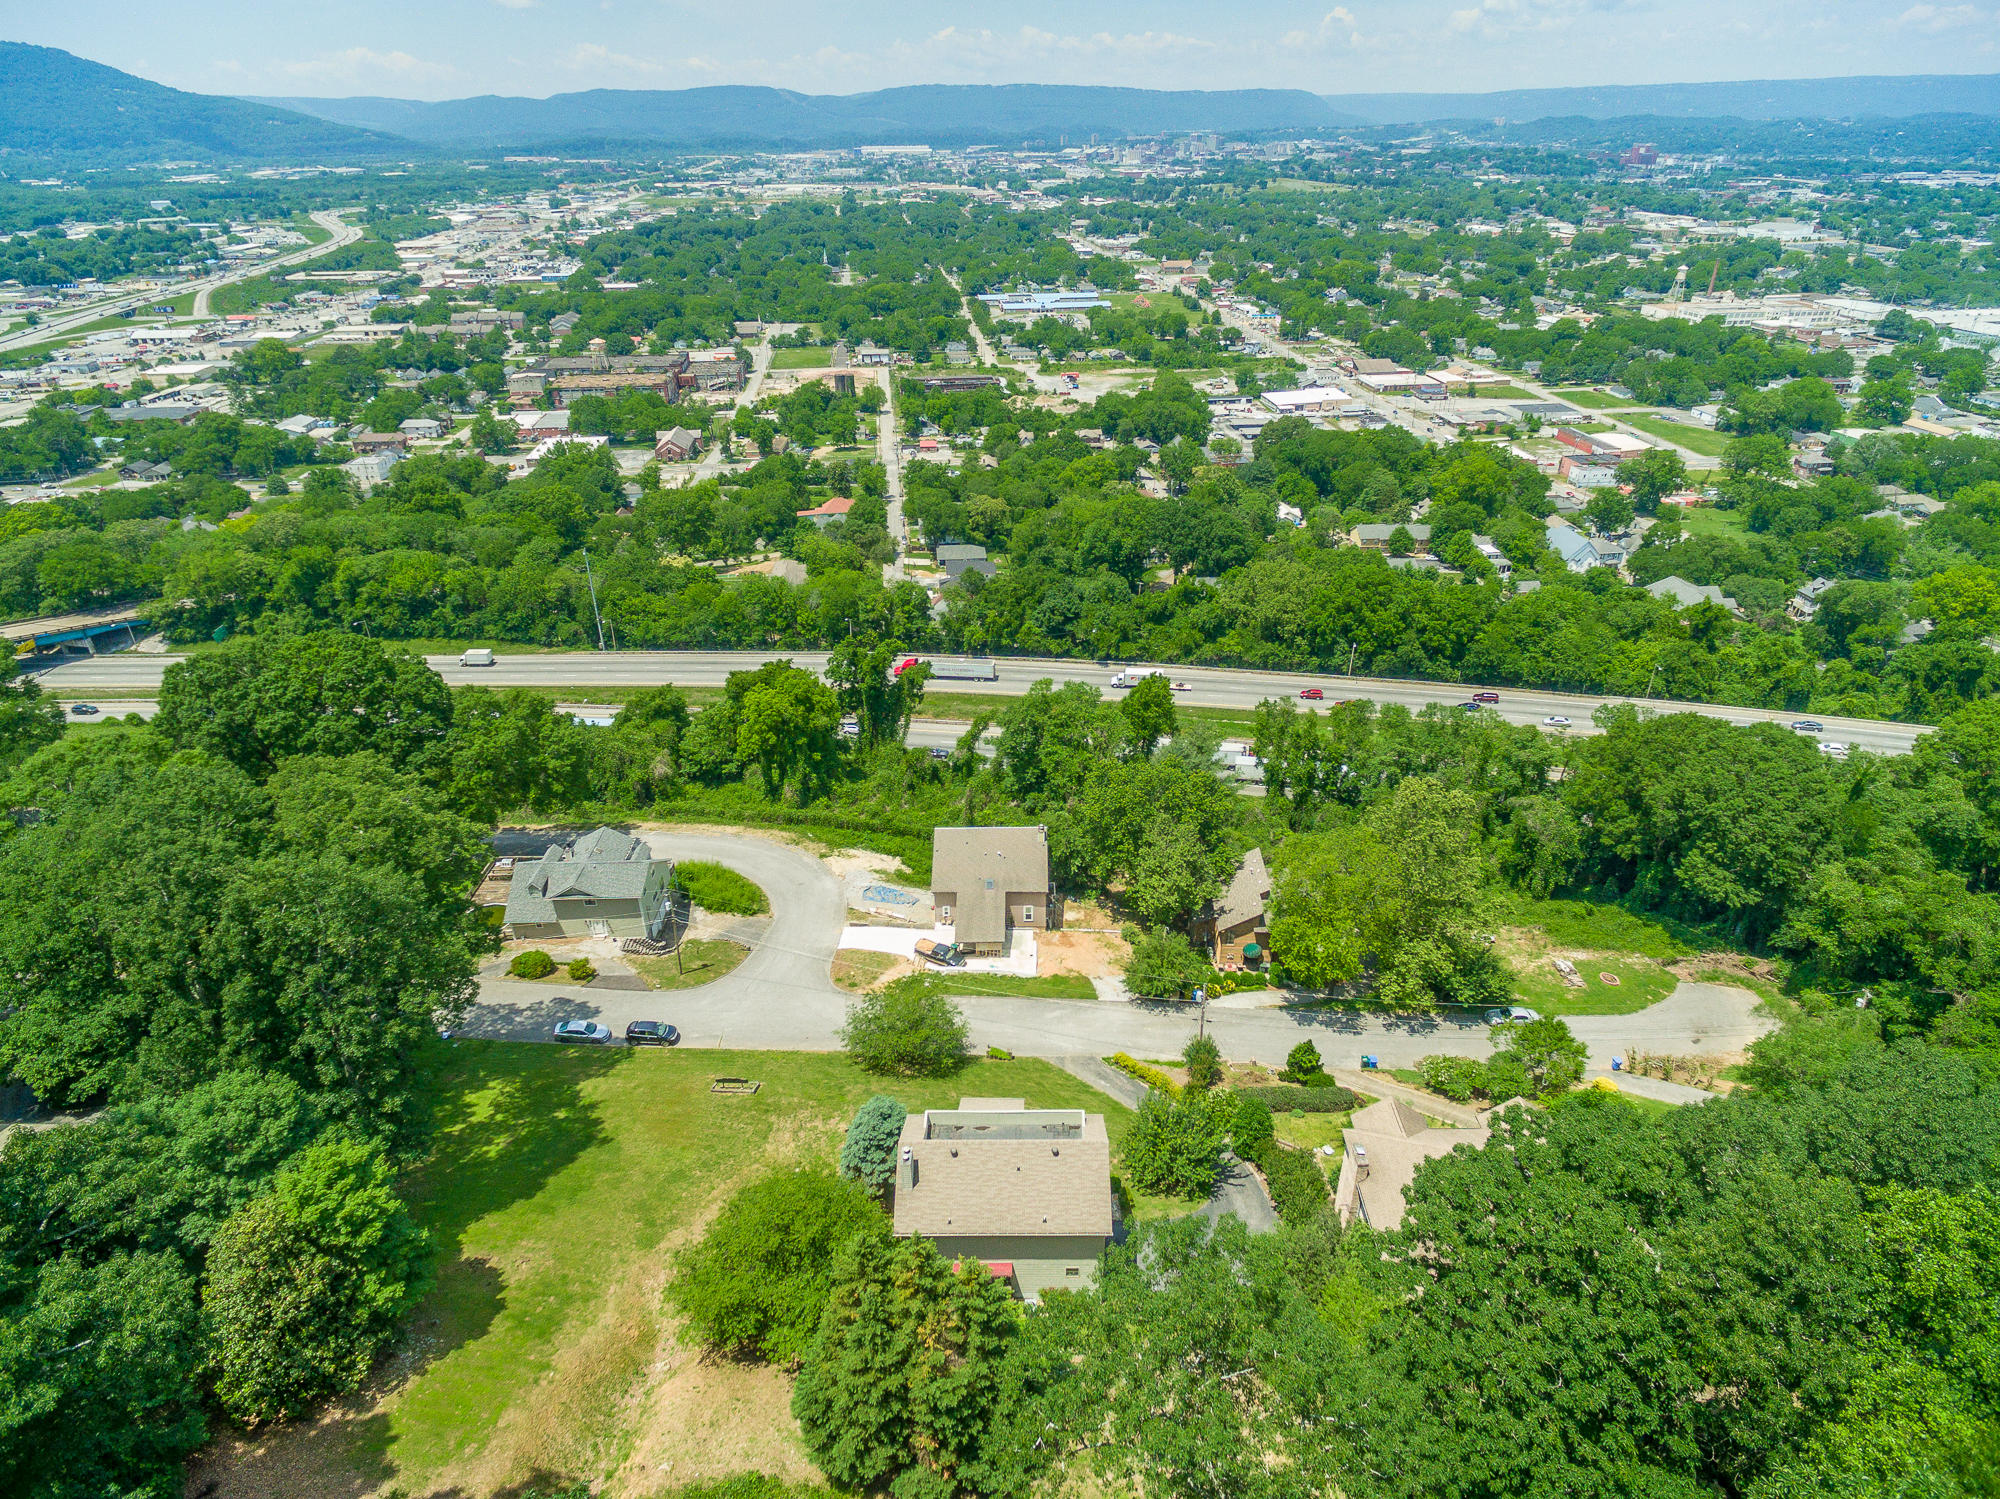 1718 S Crest Manor Ln, Chattanooga, TN 37404